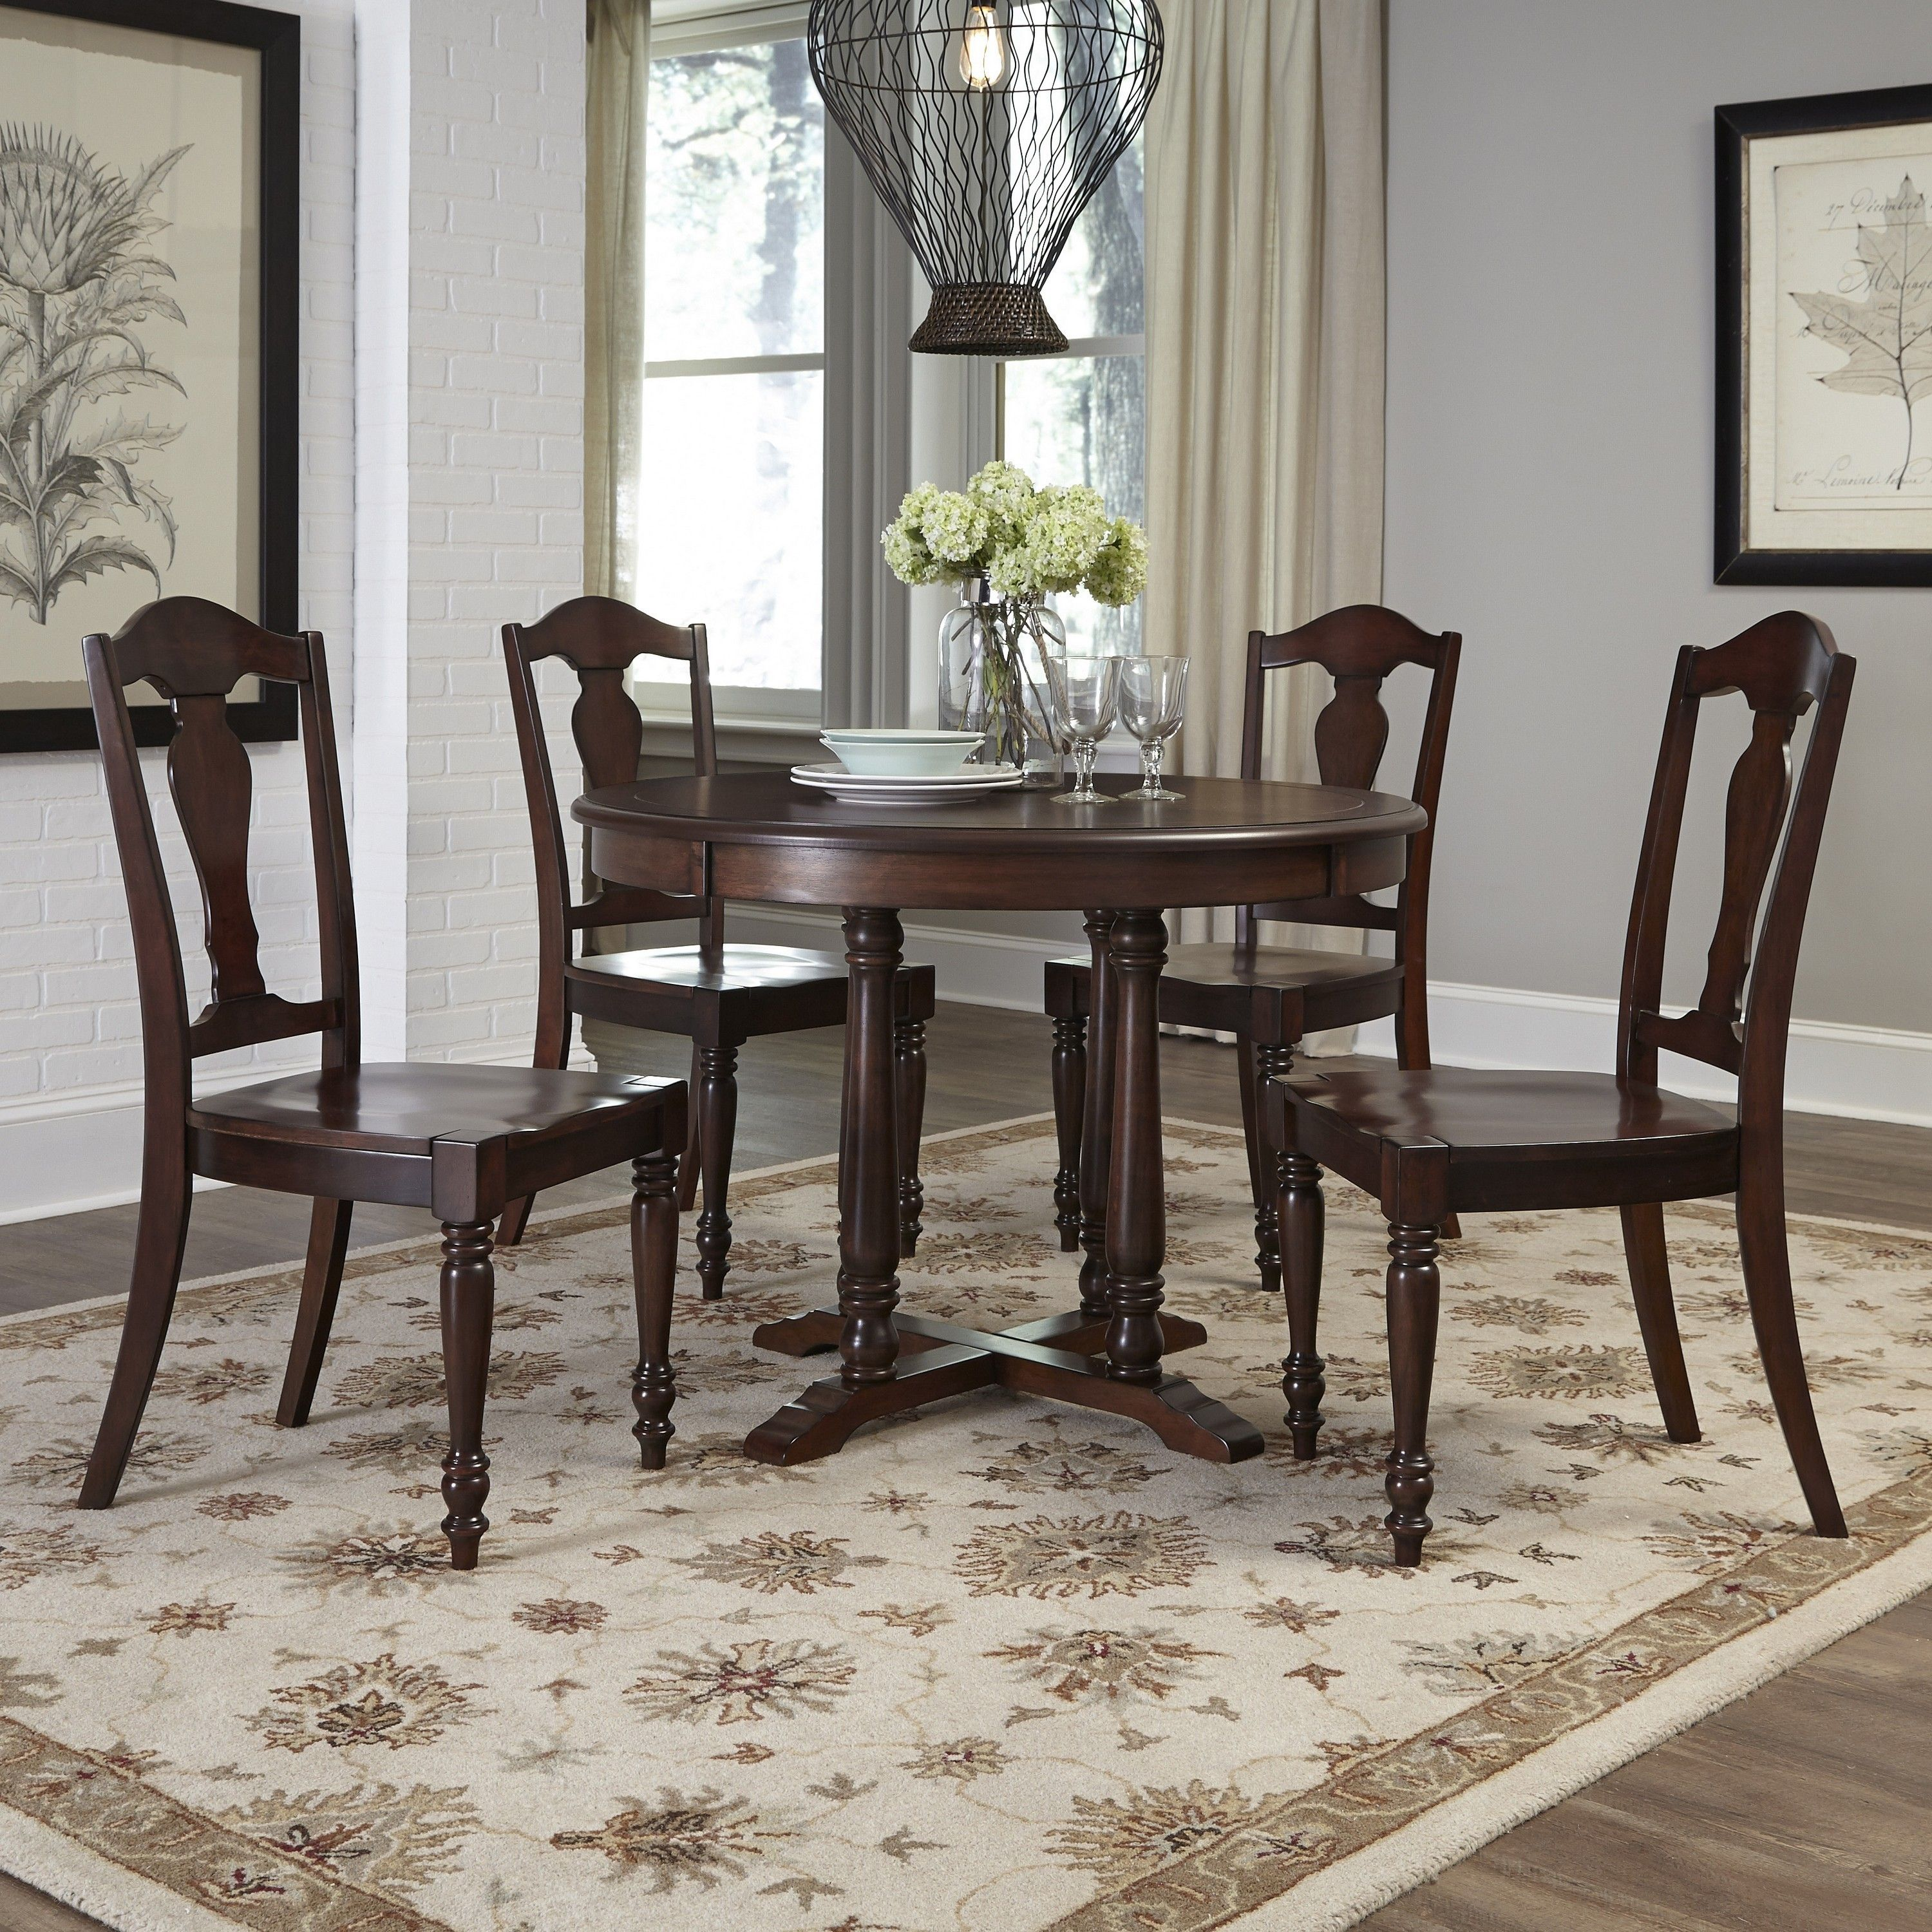 Home styles country comfort piece dining set aged bourbon brown